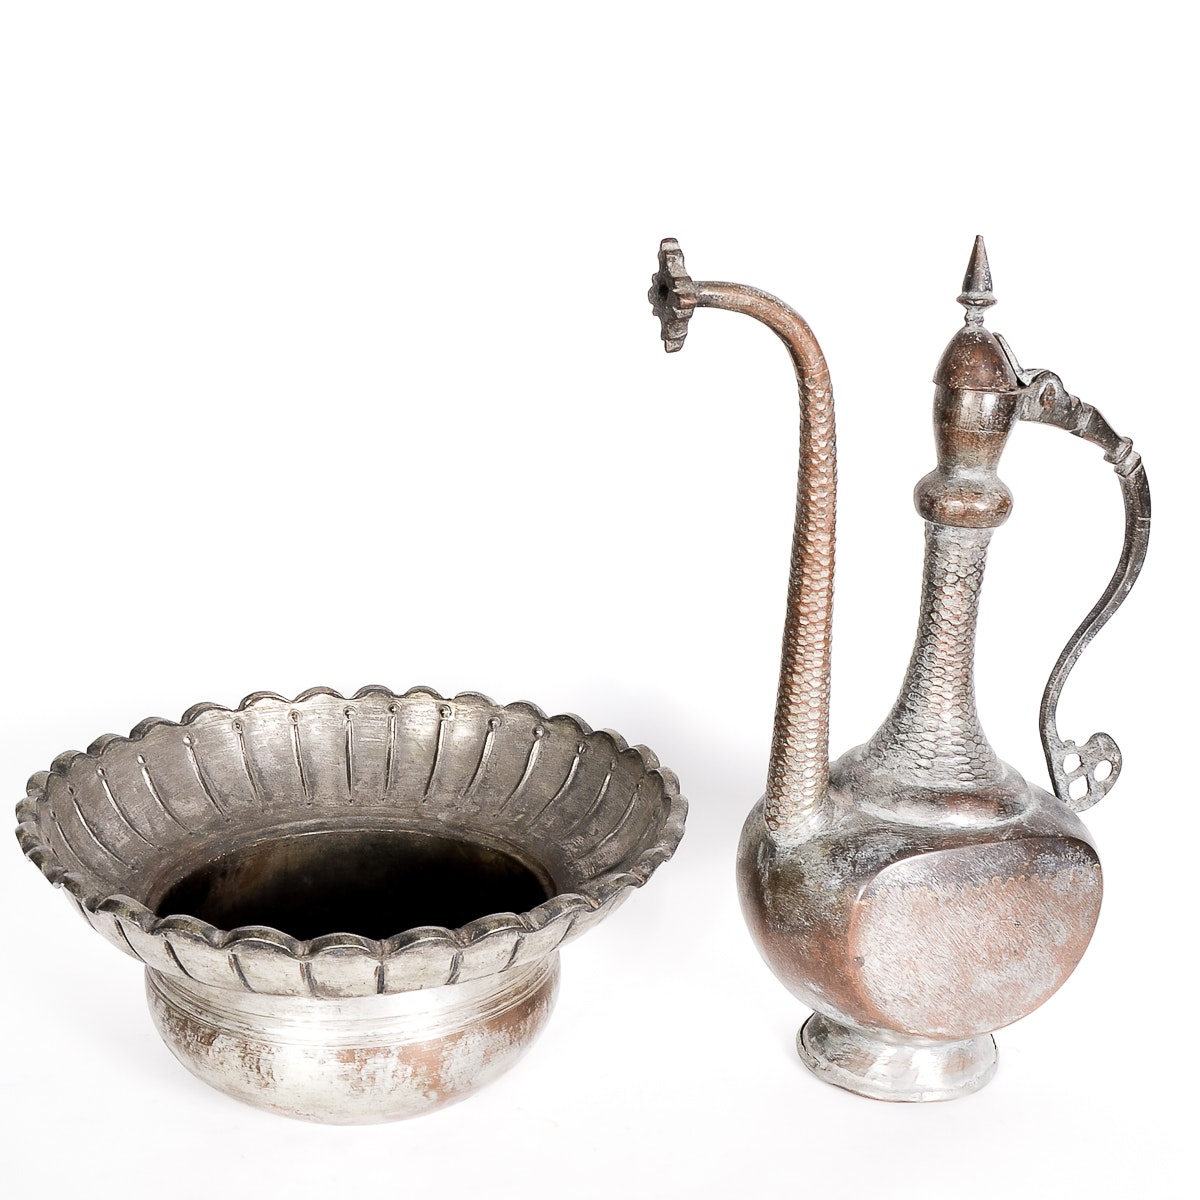 Antique Bronze Iranian Hammered Ewer and Bowl